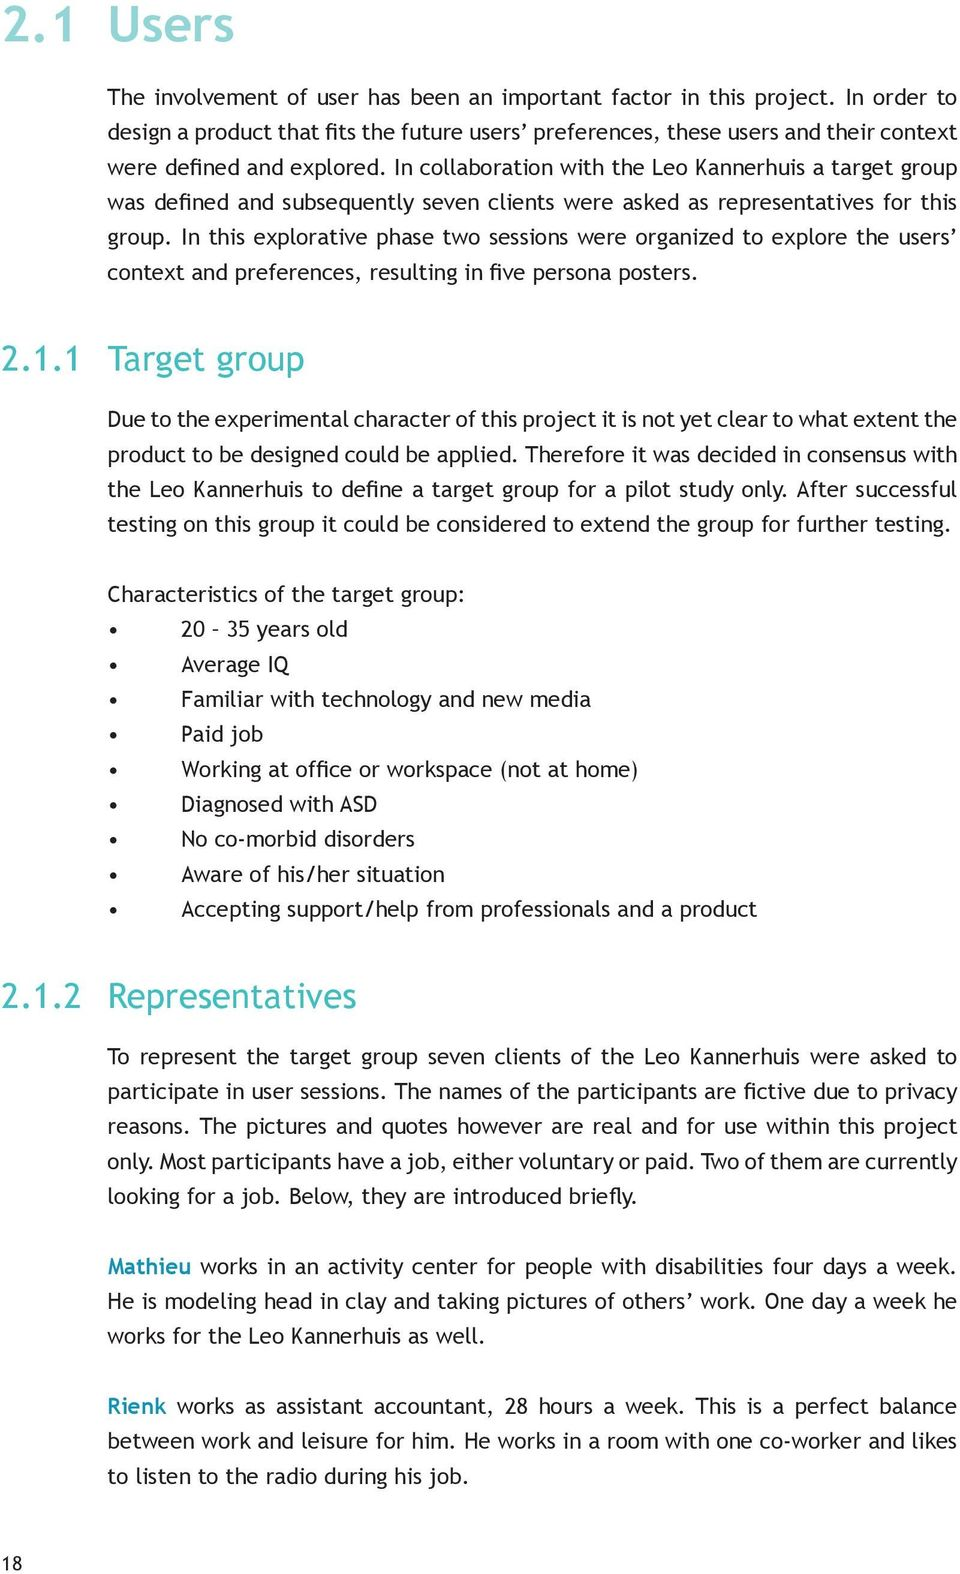 In collaboration with the Leo Kannerhuis a target group was defined and subsequently seven clients were asked as representatives for this group.